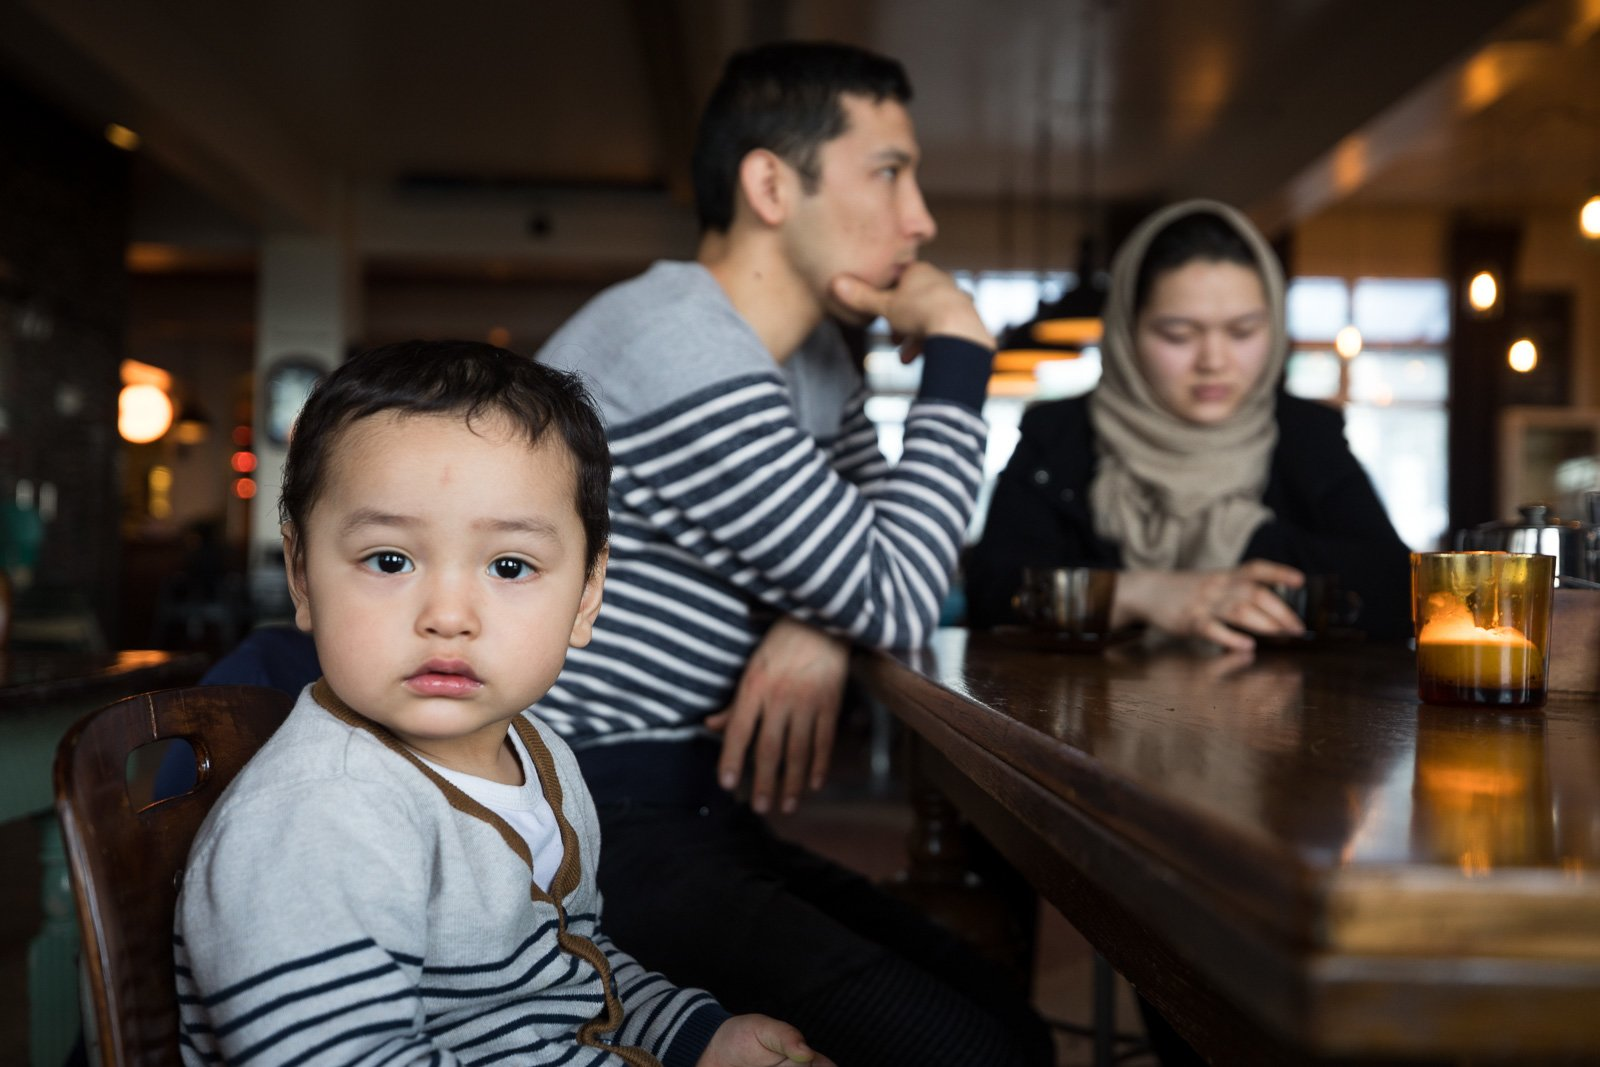 The child is two years old and was born in Norway, but has no official citizenship.